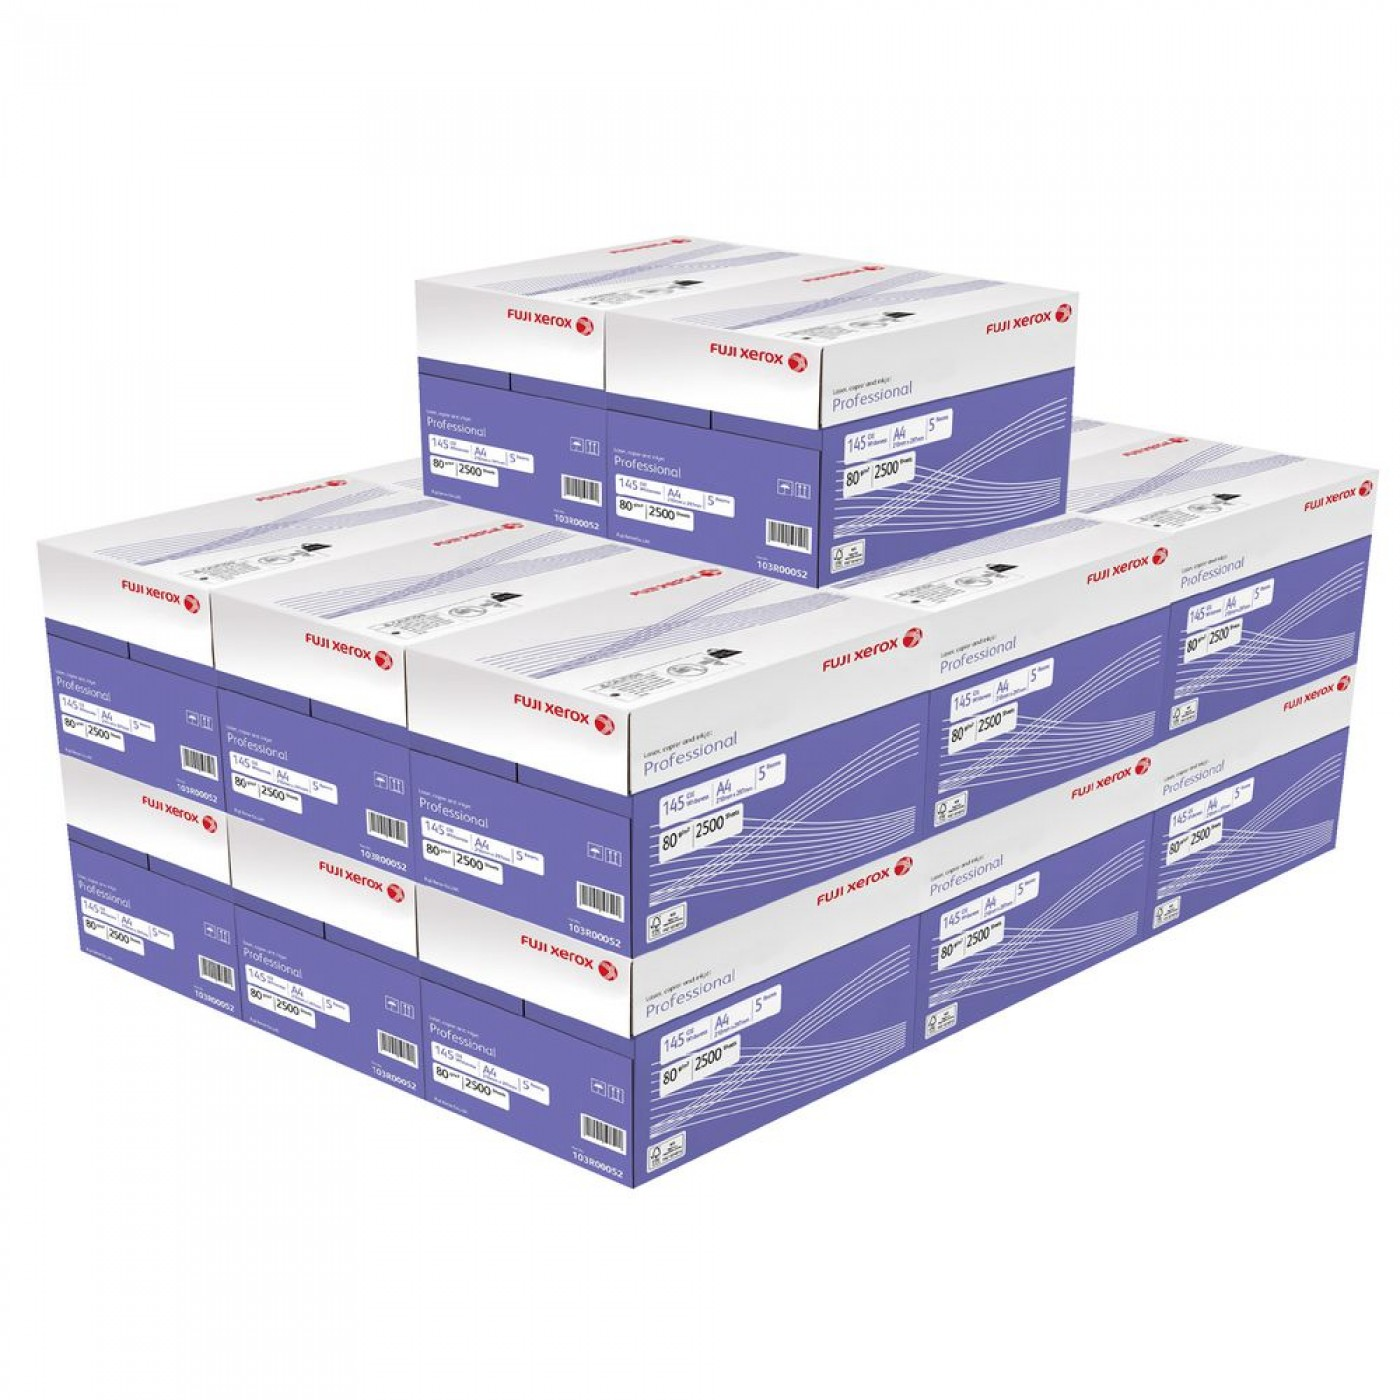 013 Fxprofa4pt Fujixerox Fuji Xerox Professional 80gsm A4 Copy Paper 100 Ream Pallet White Research Buying Papers Remarkable Online Reviews 1400